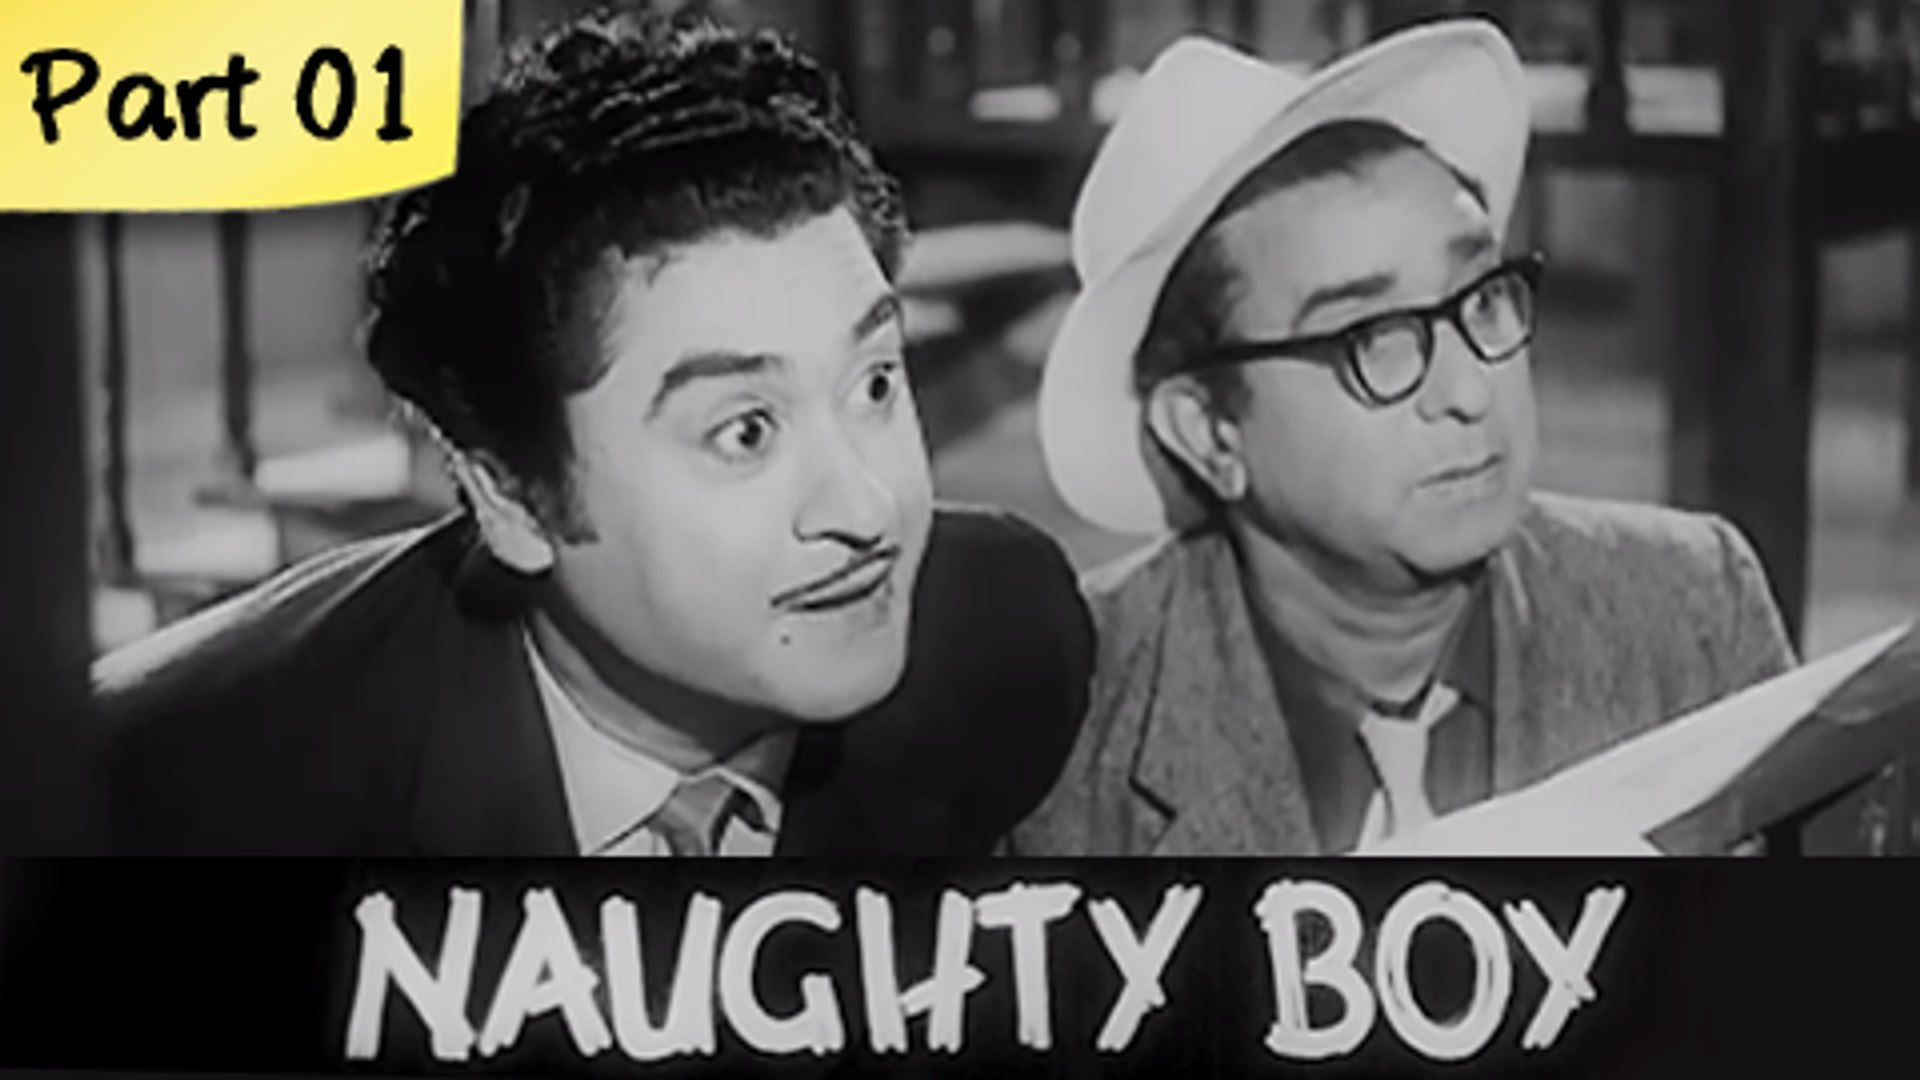 Naughty Boy - Part 01/09 - Classic Funny Hit Hindi Drama Movie - Kishore Kumar, Kalpana